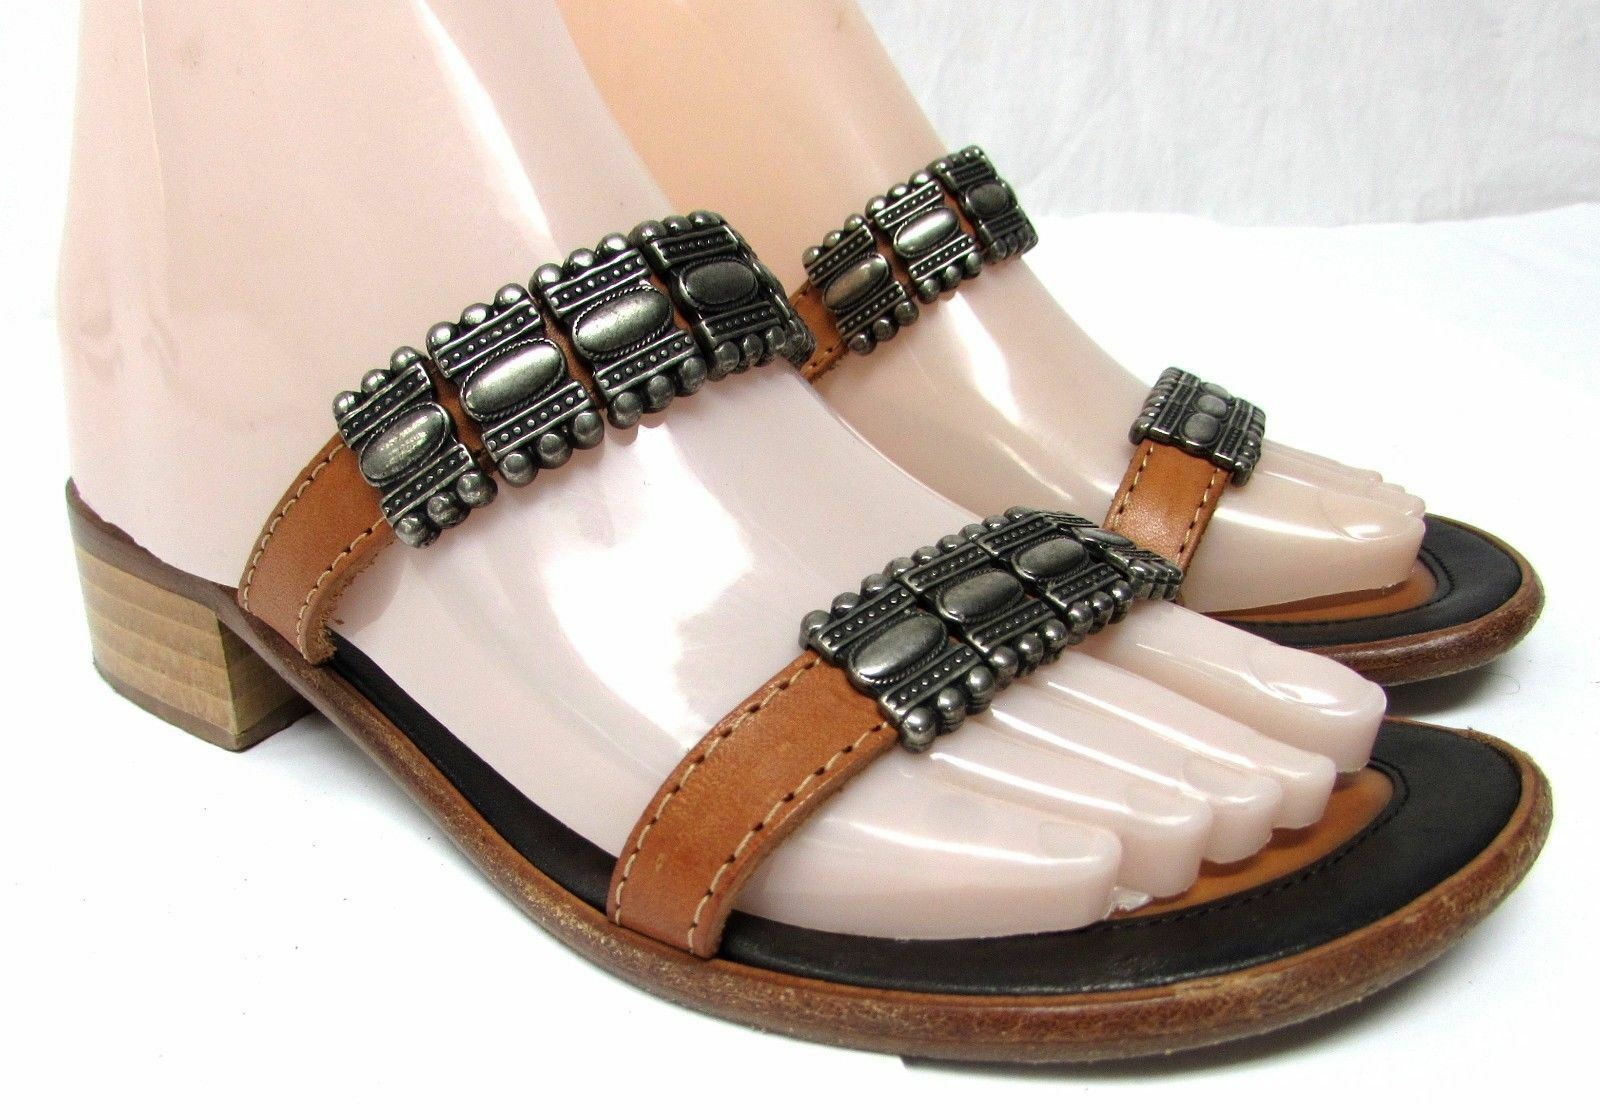 Sesto Meucci slides size 7.5 M metal brown double strap slides Meucci leather Sandals shoes 3e4881